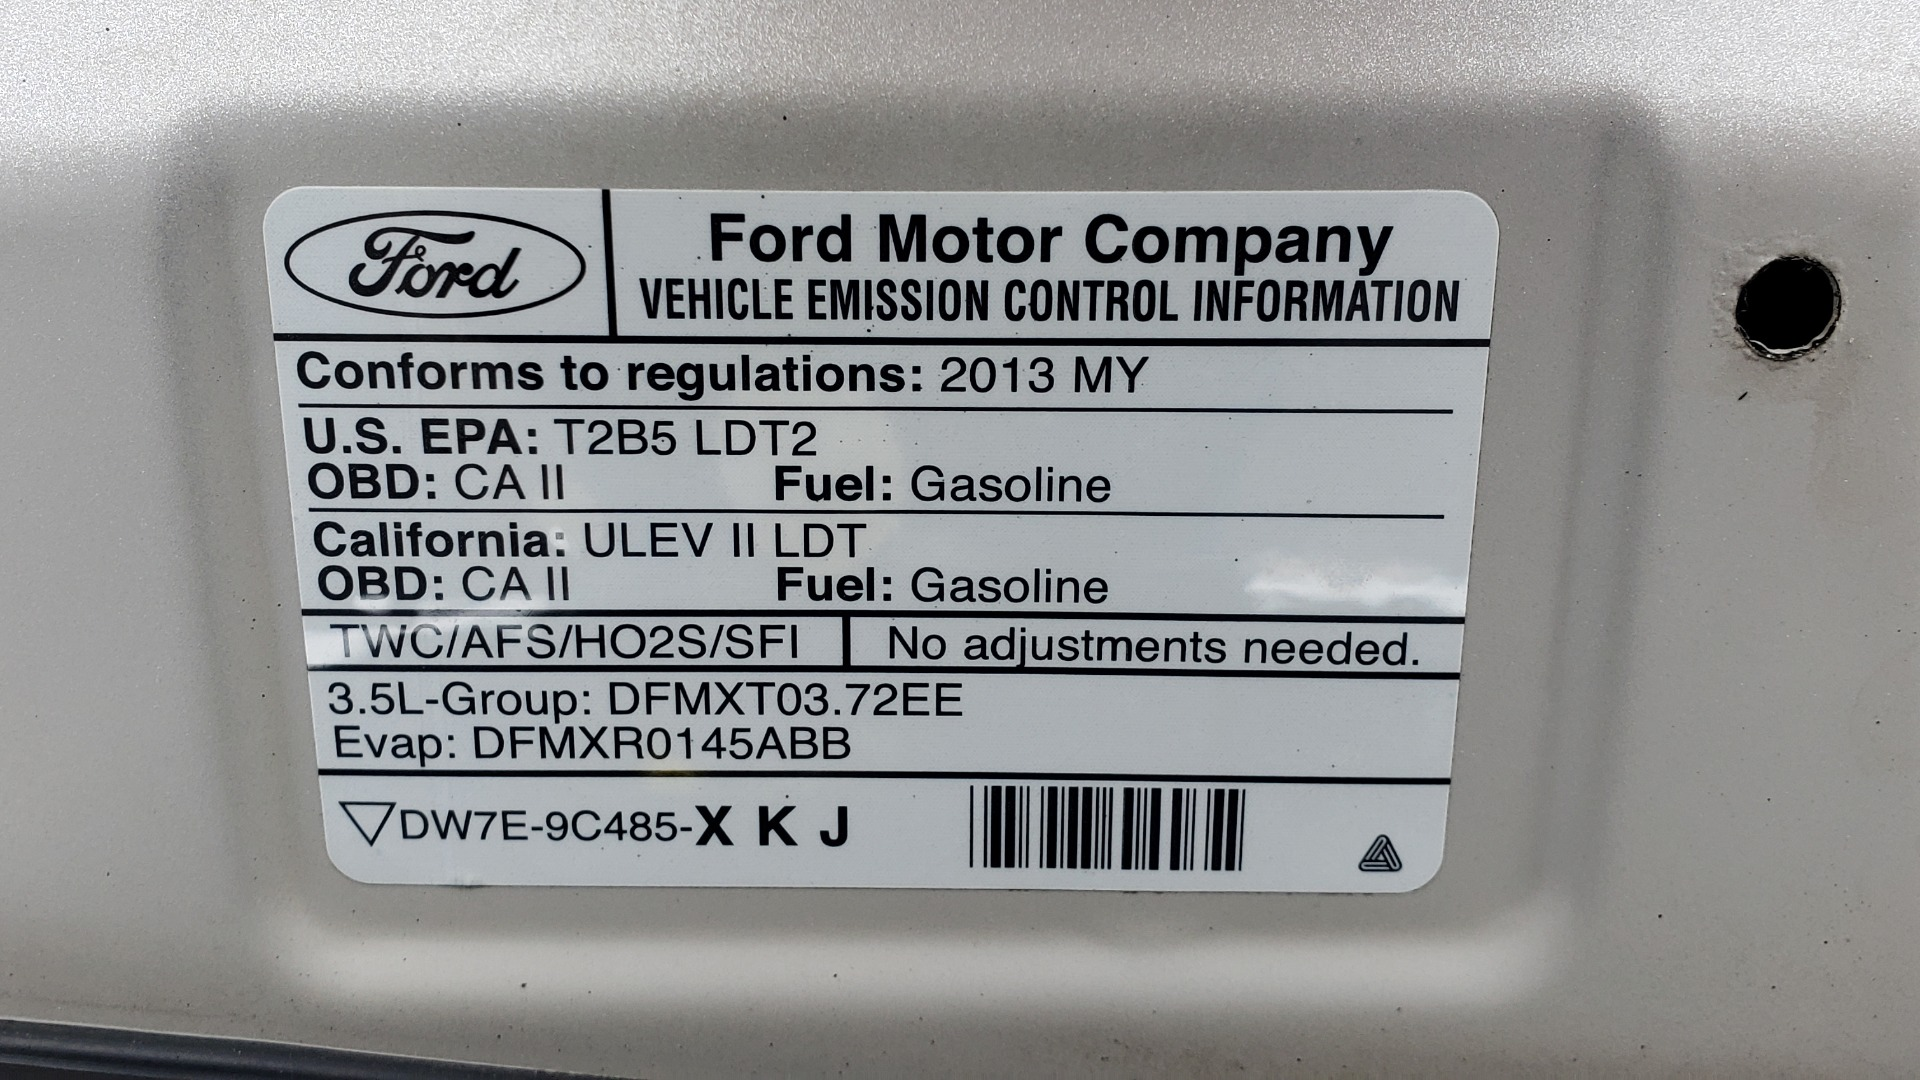 Used 2013 Ford EDGE SE / AWD / 18 IN WHEELS / SYNC / 3.5L V6 / AUTO for sale Sold at Formula Imports in Charlotte NC 28227 12